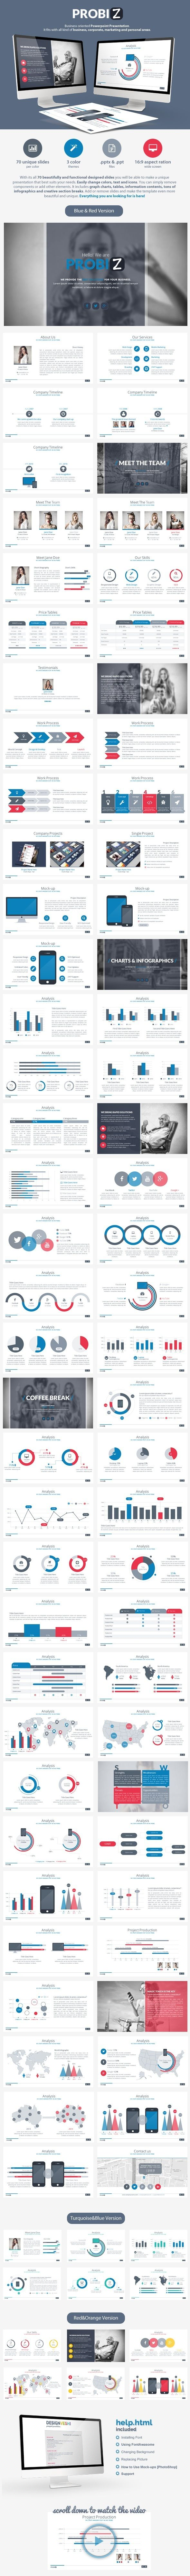 ProBiz Powerpoint Presentation (Powerpoint Templates)